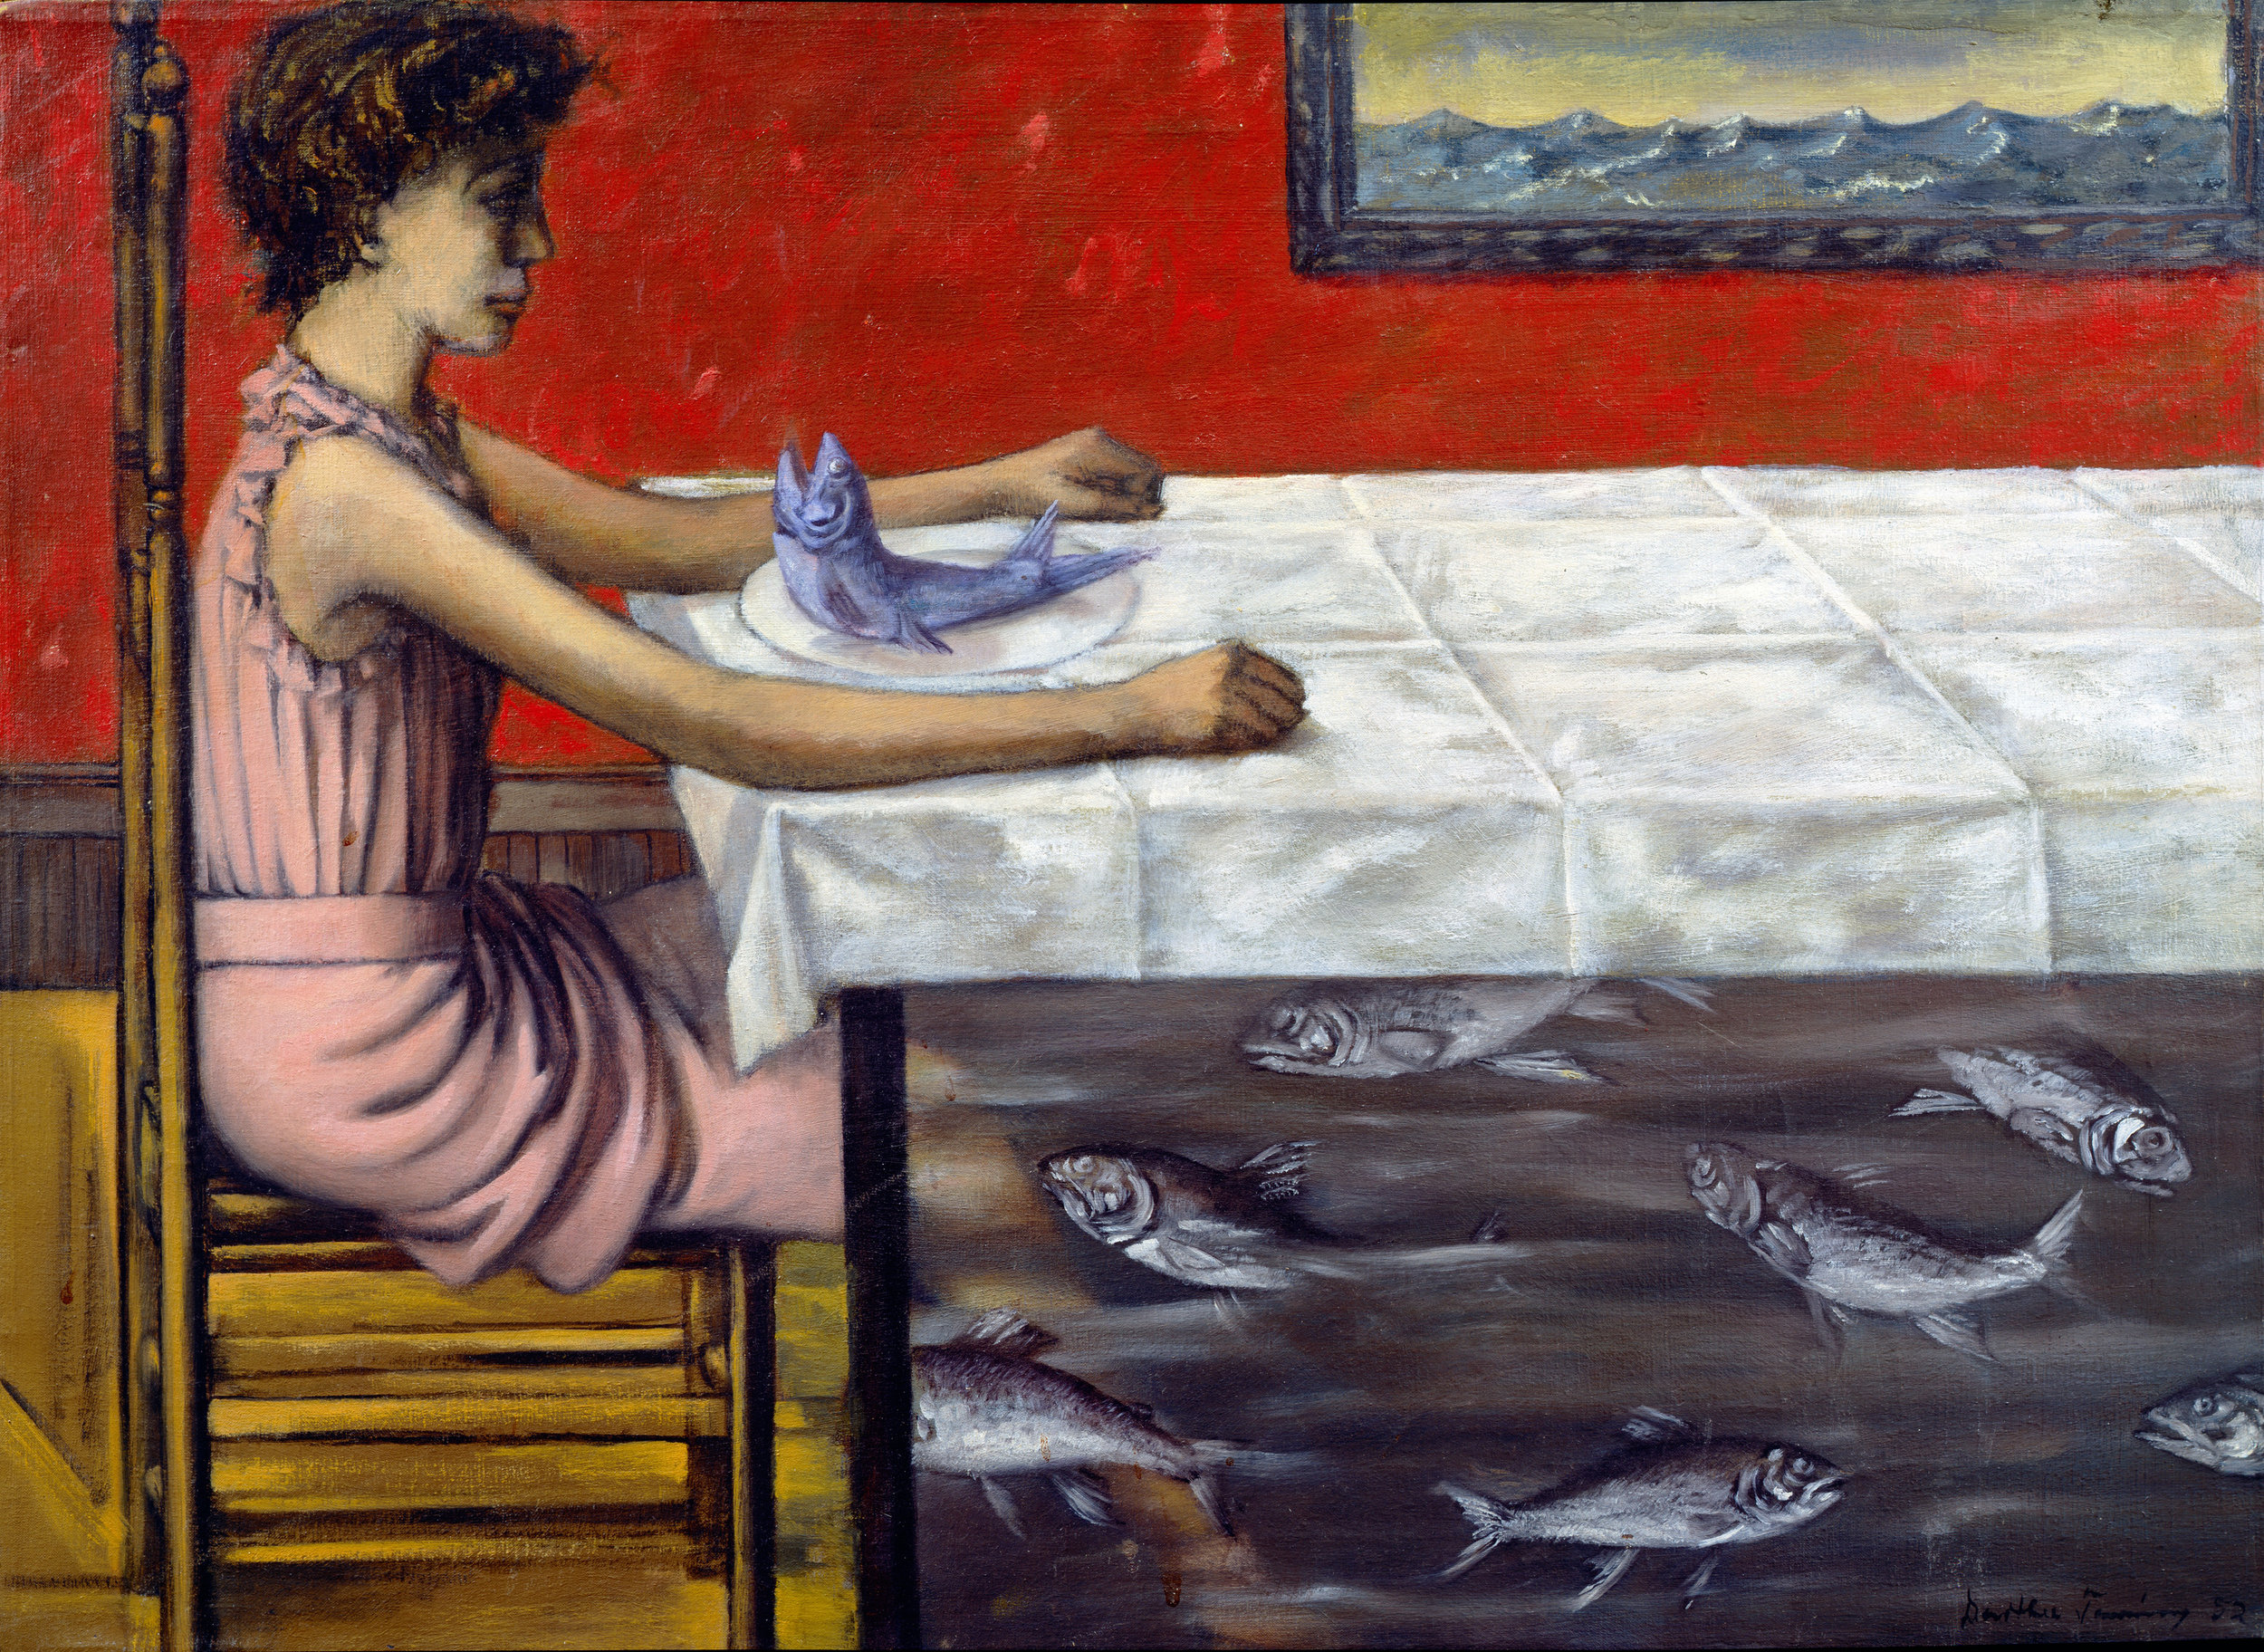 Dorothea Tanning (1910 – 2012) La Truite au bleu (Poached Trout) 1952 Oil paint on canvas 400 x 550 mm Michael Wilkinson, New Orleans, L.A © DACS, 2019.jpg